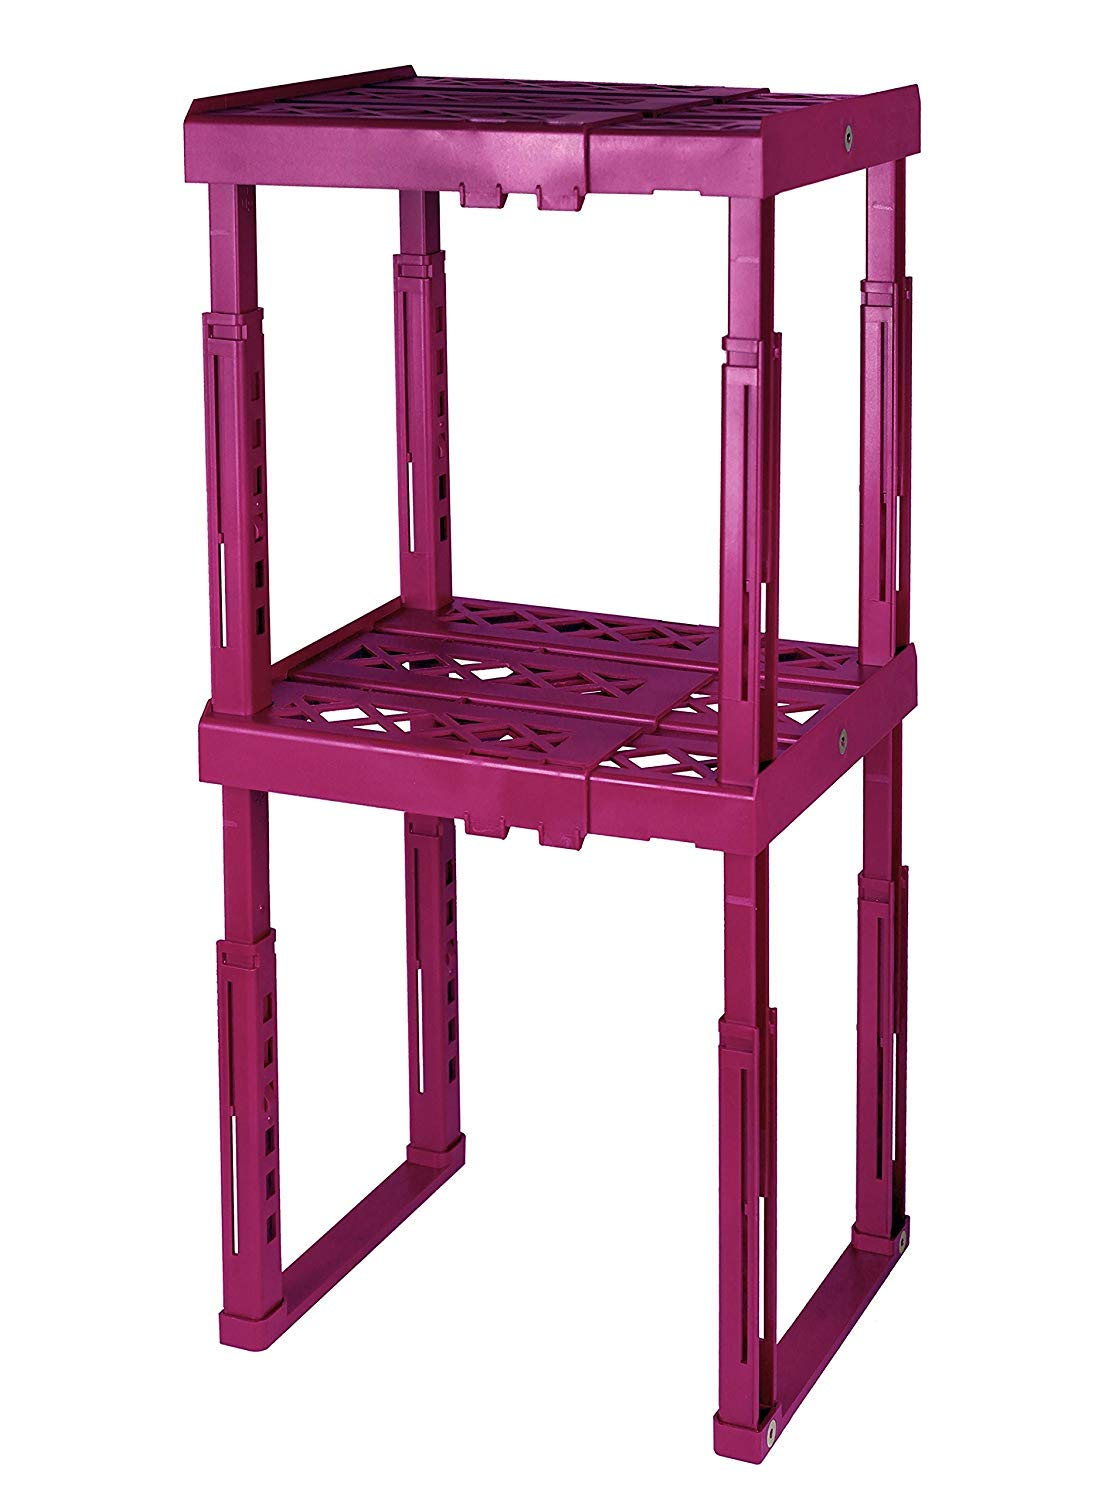 Tools for School Locker Shelf. Adjustable Height and Width. Stackable and Heavy Duty. Holds 40 lbs. per Shelf (2 Pack, Magenta) by Tools for School (Image #1)